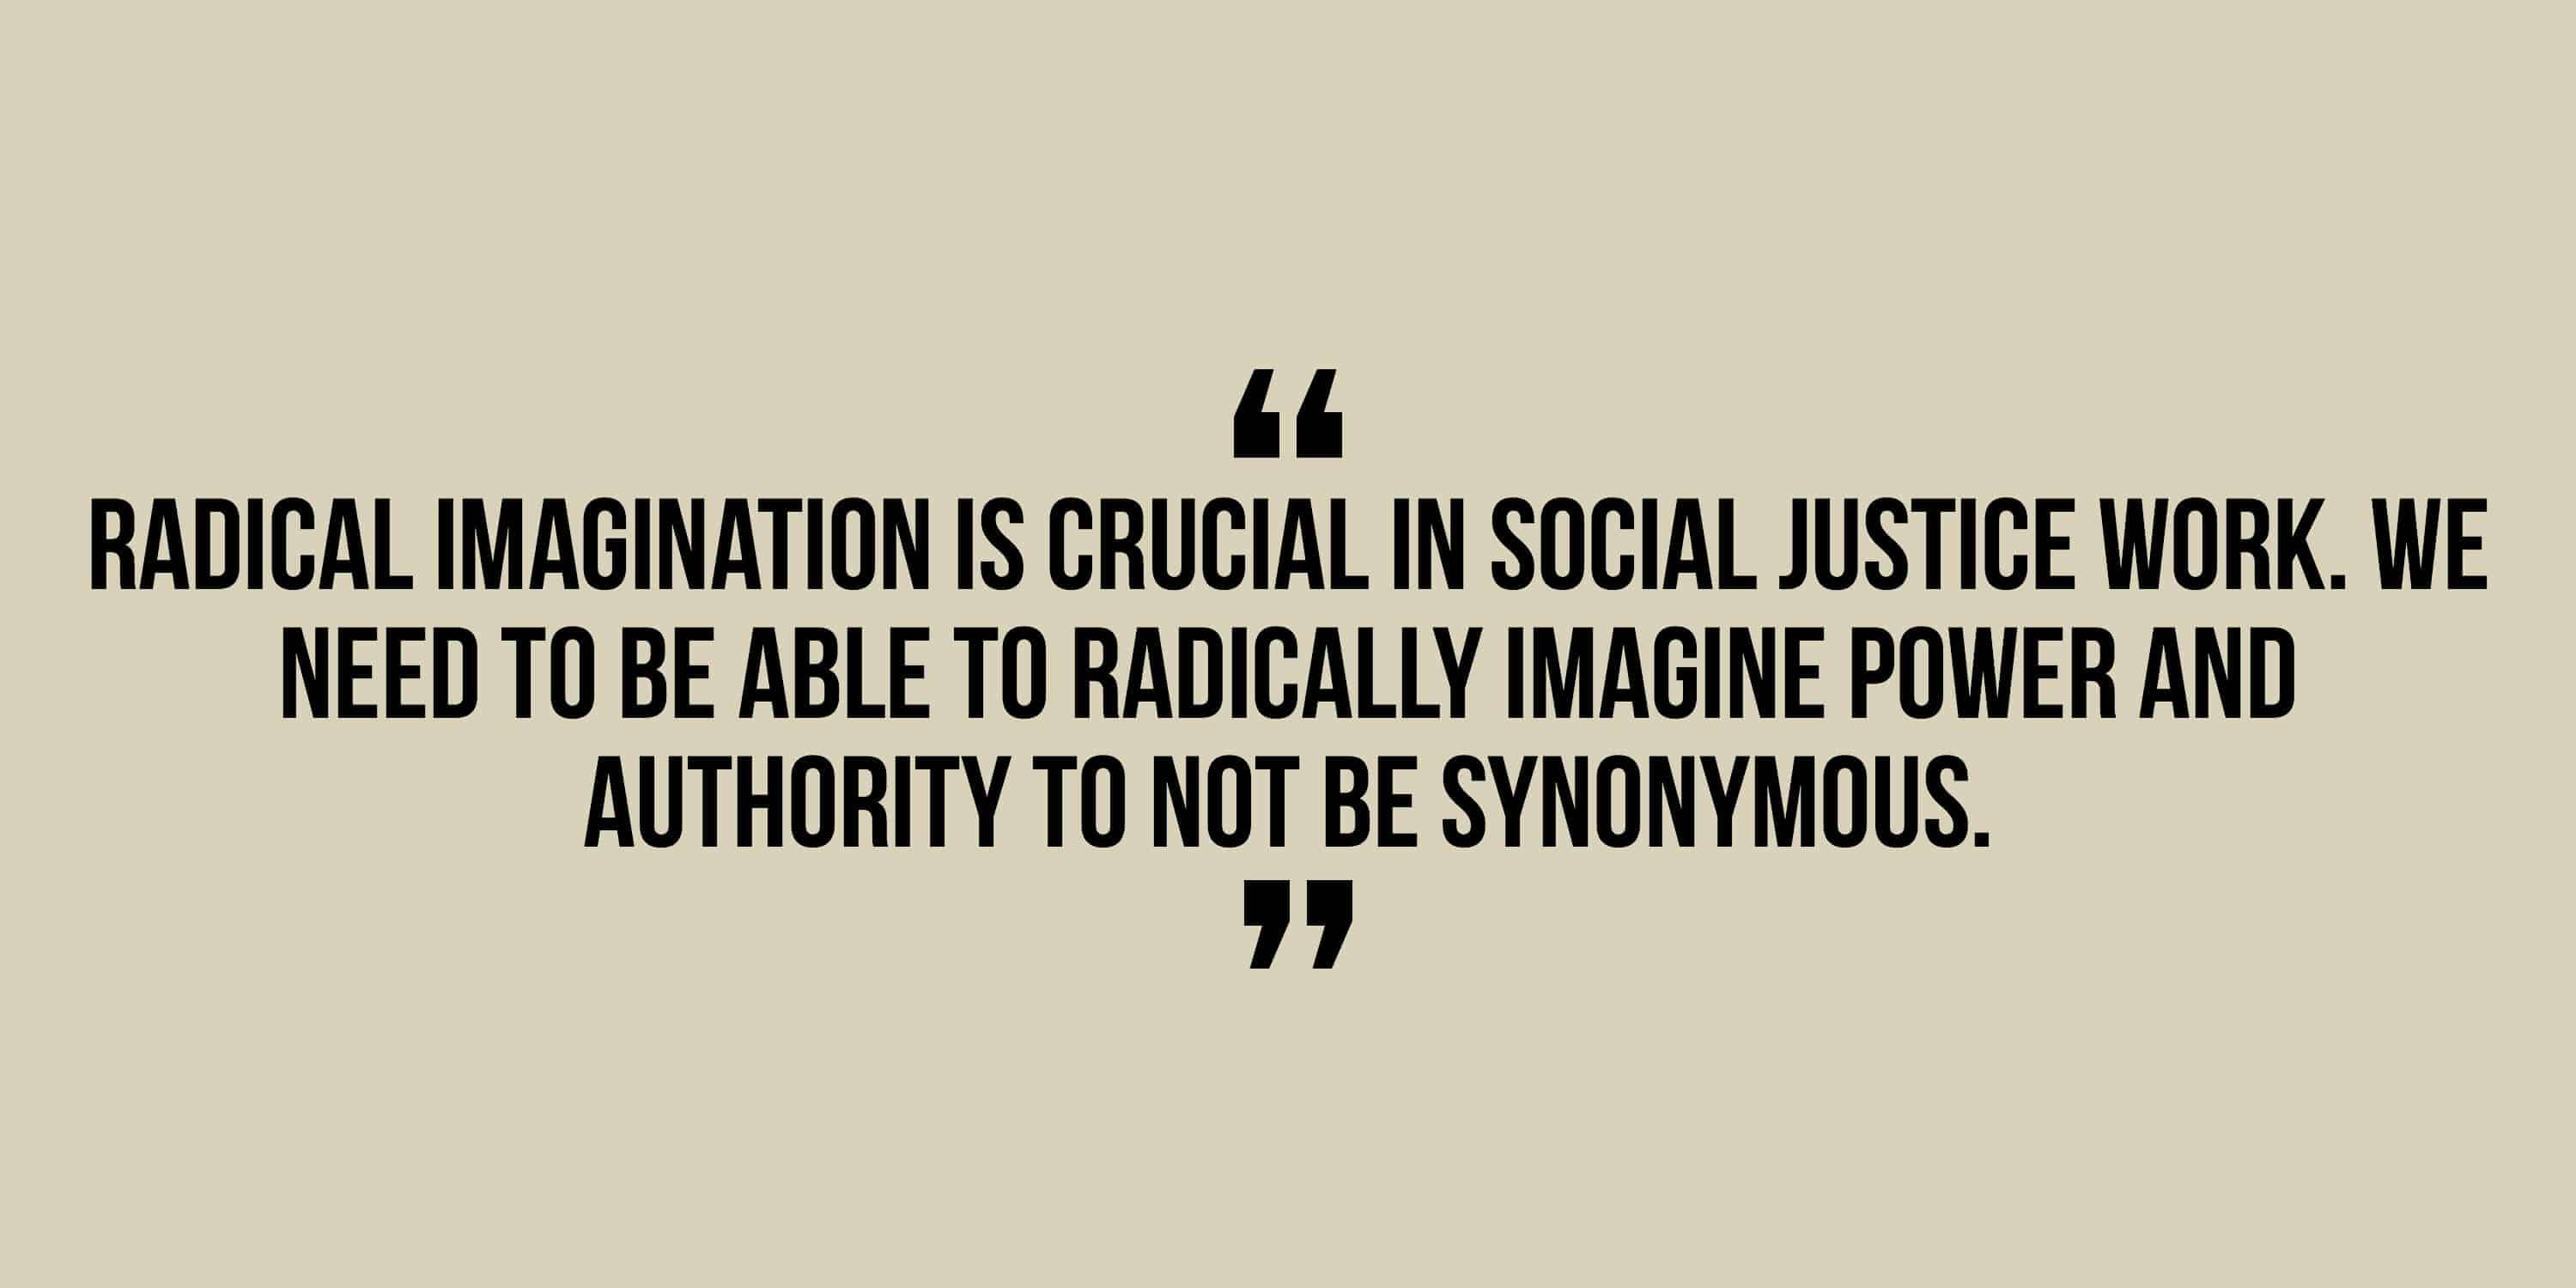 Radical imagination is crucial in social justic work